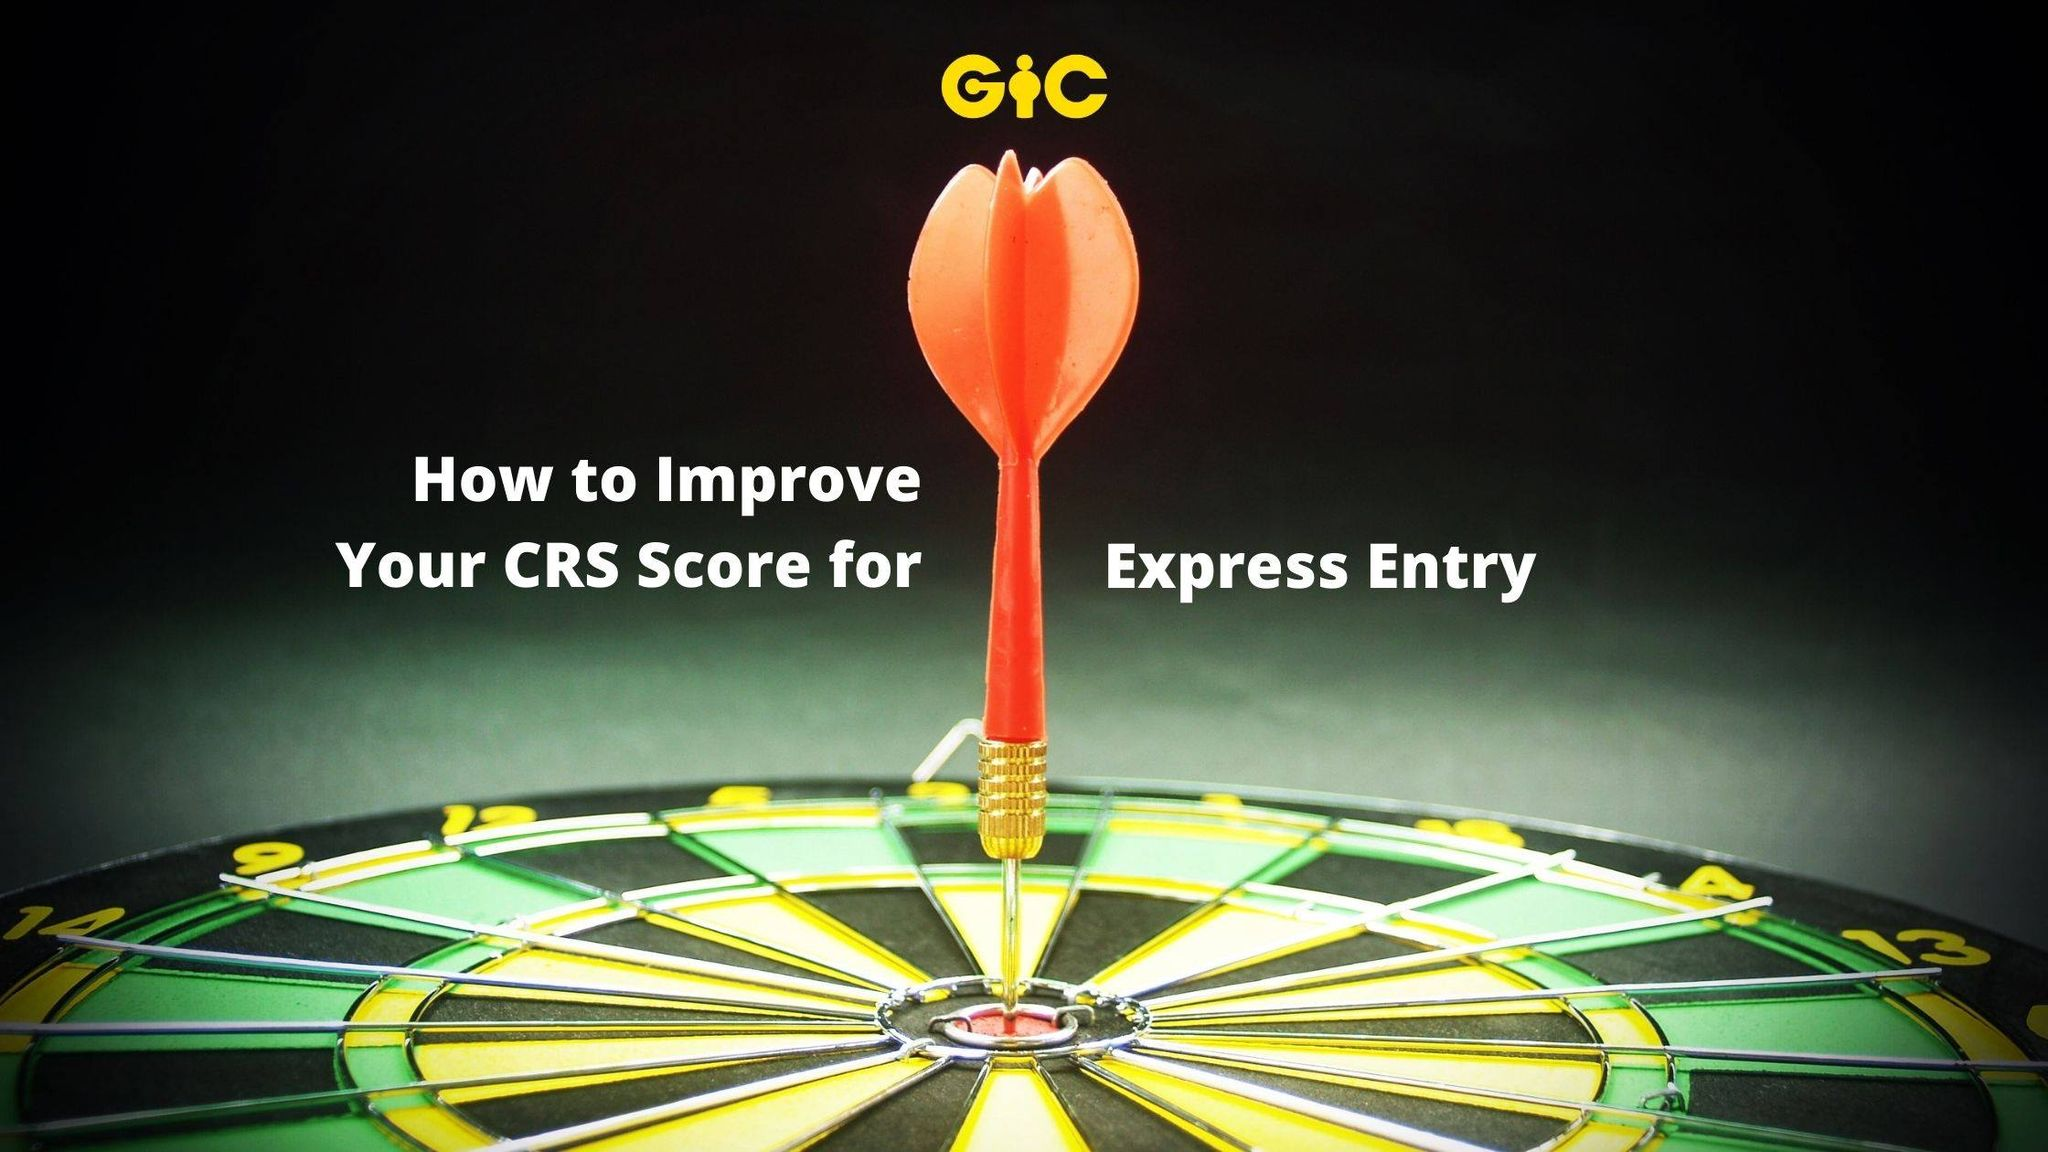 How to Improve Your CRS Score for Express Entry